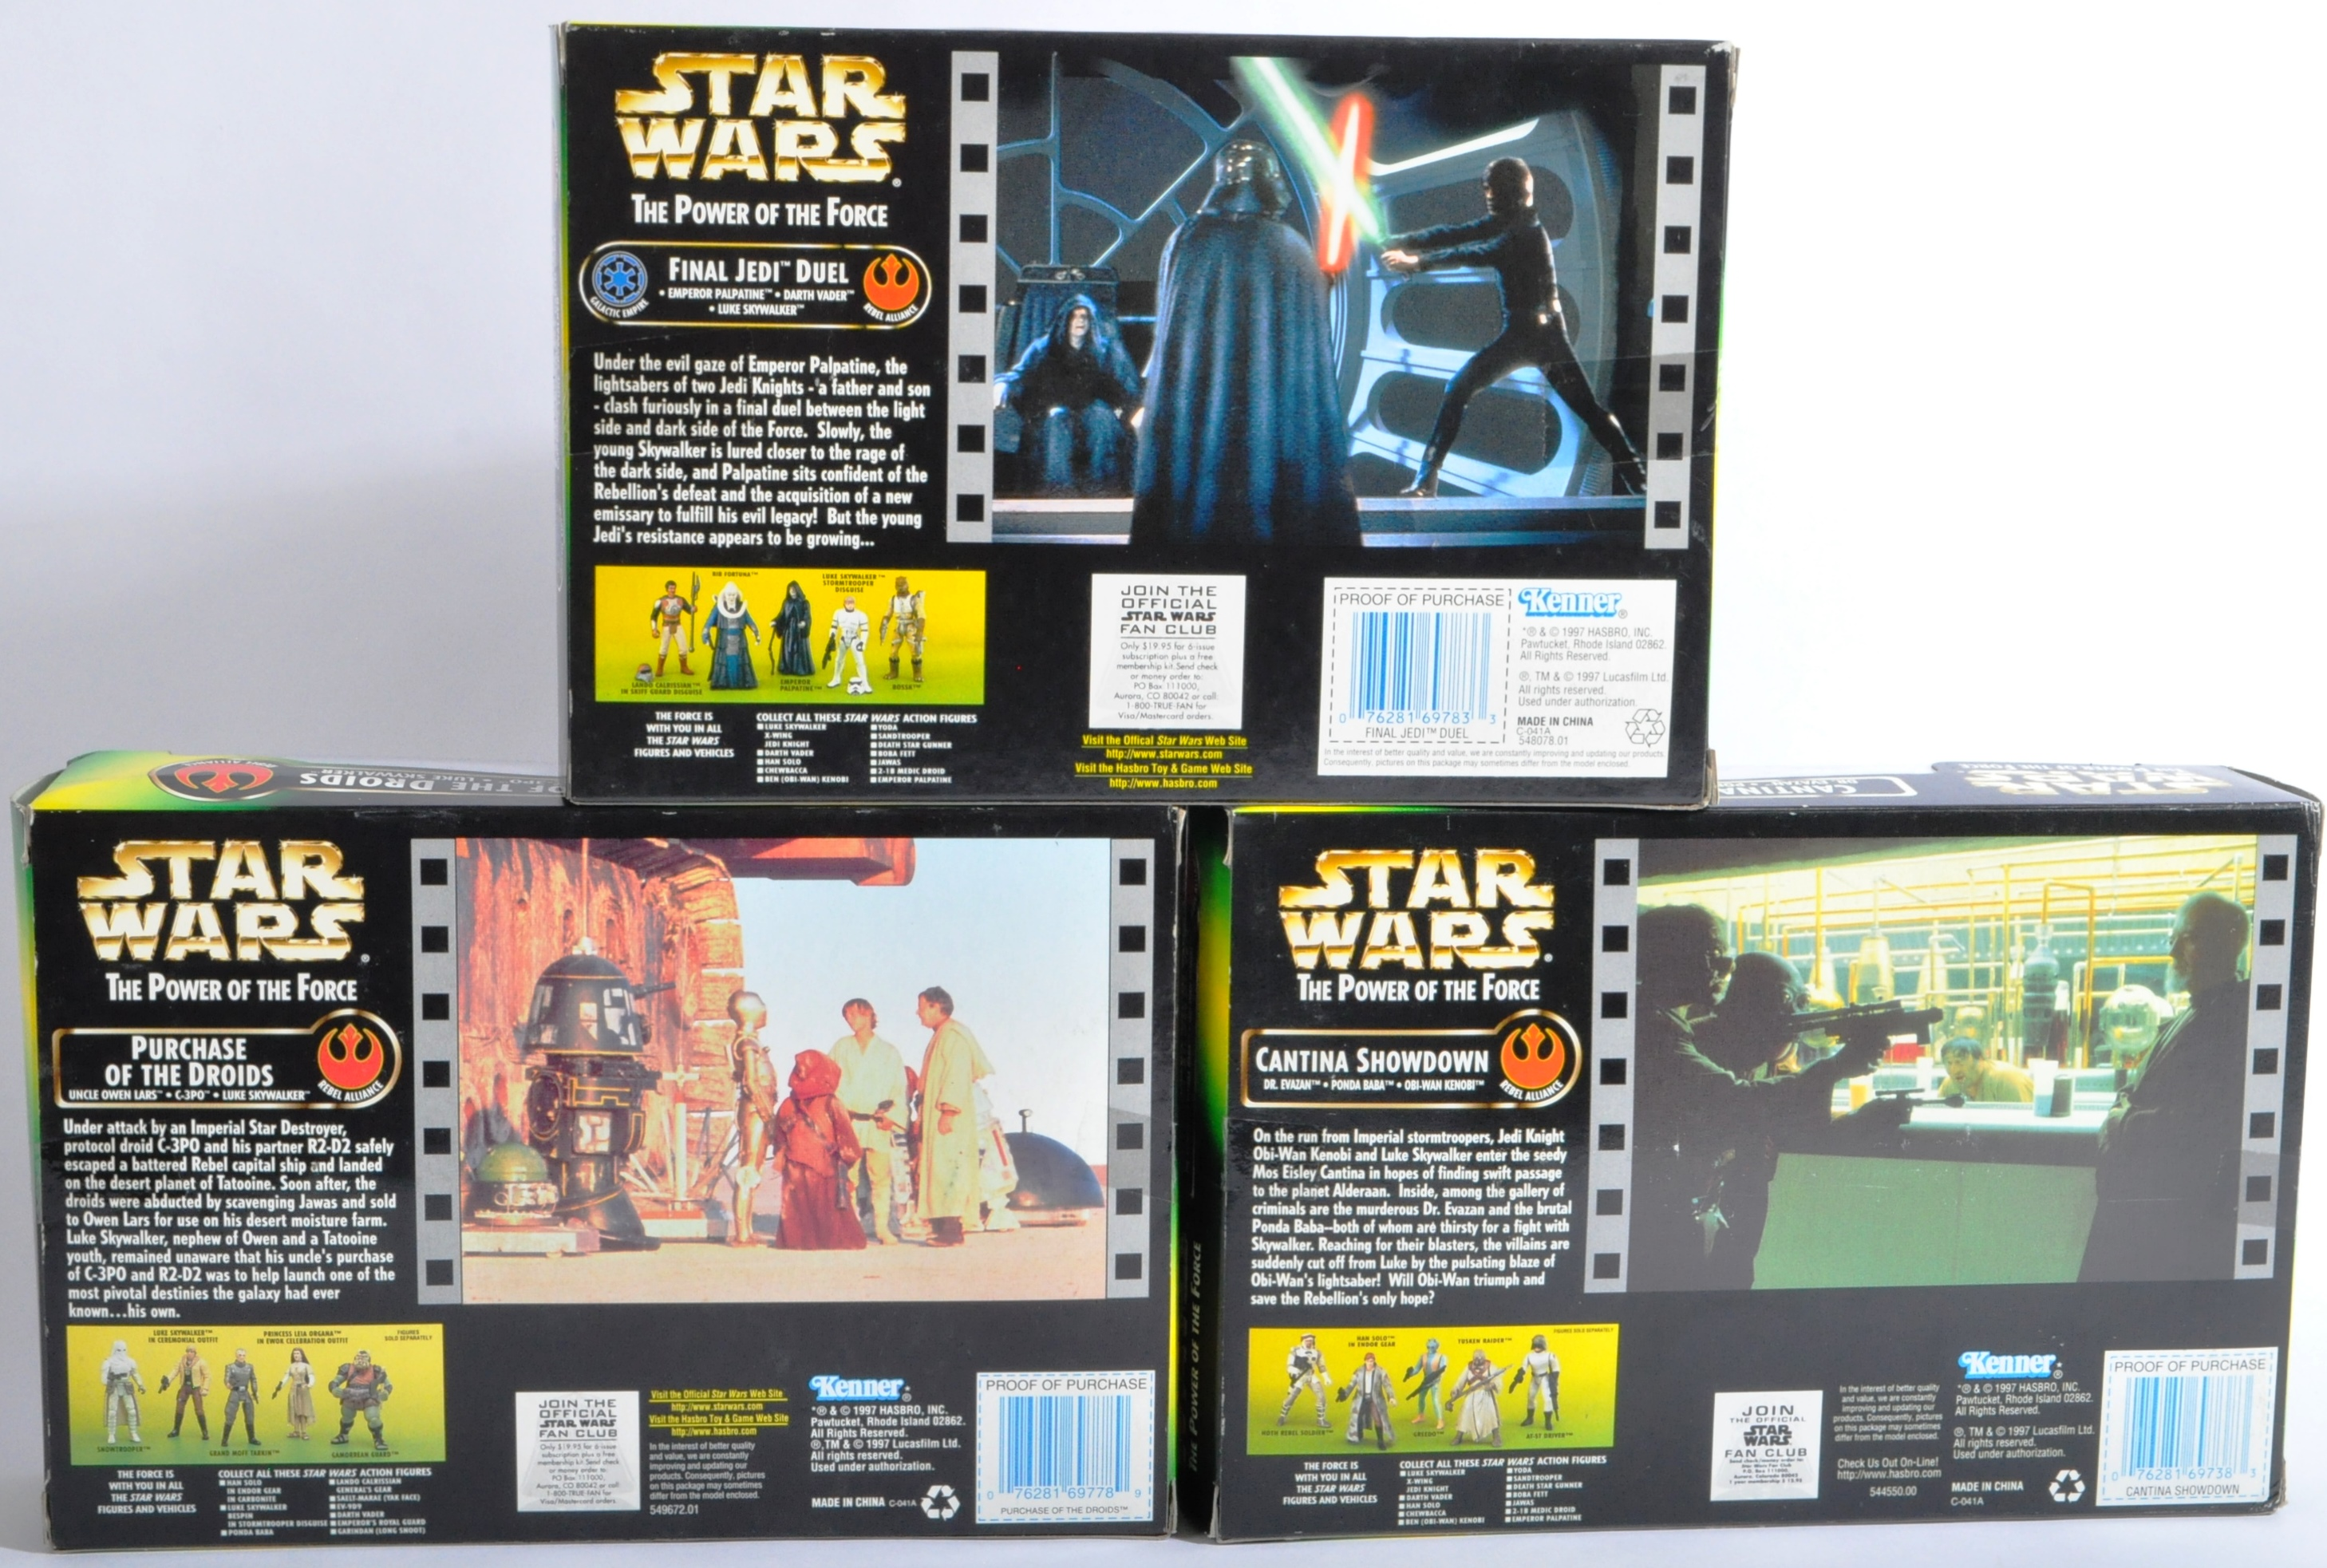 STAR WARS - COLLECTION OF KENNER POWER OF THE FORCE ACTION FIGURES - Image 2 of 5